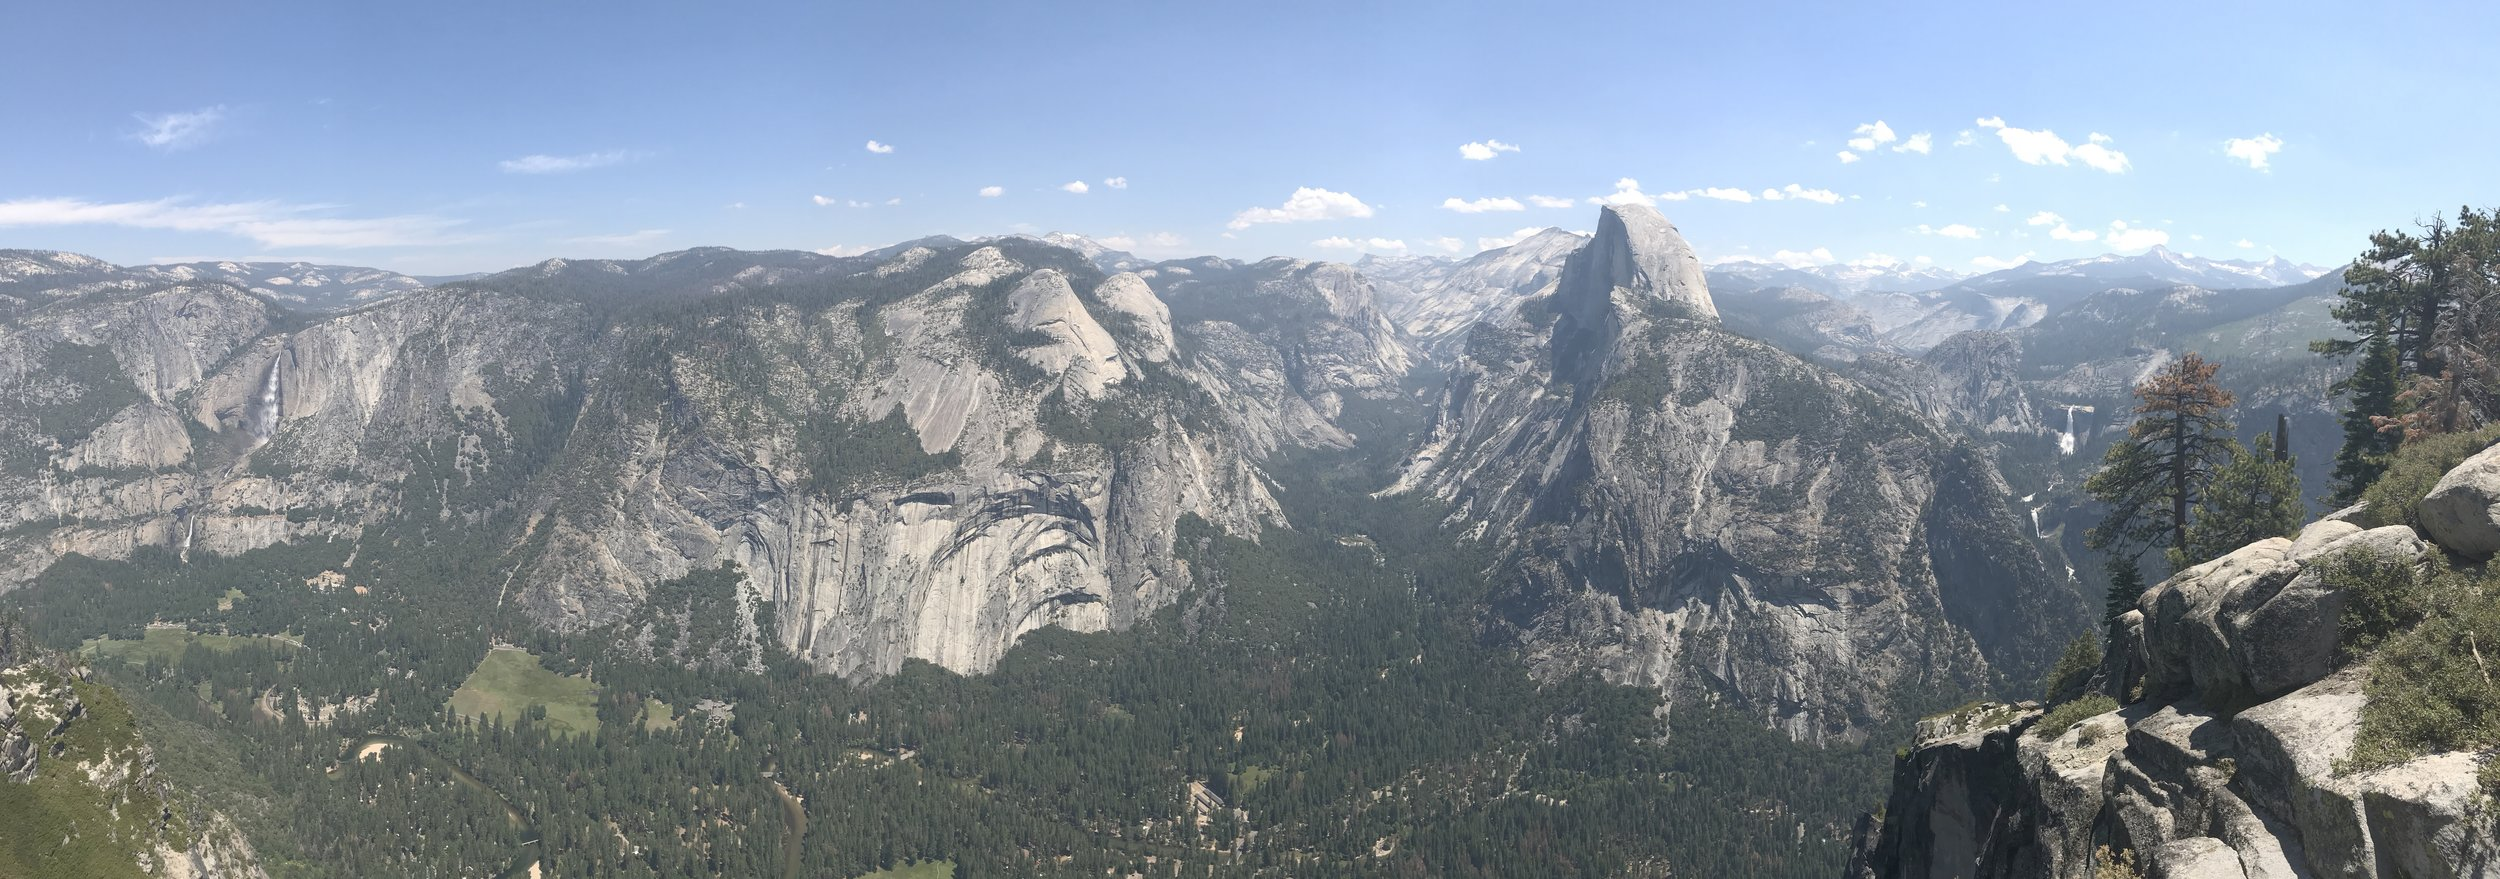 Yosemite Falls on the left, Half-dome in the middle, and Vernal Falls on the right.